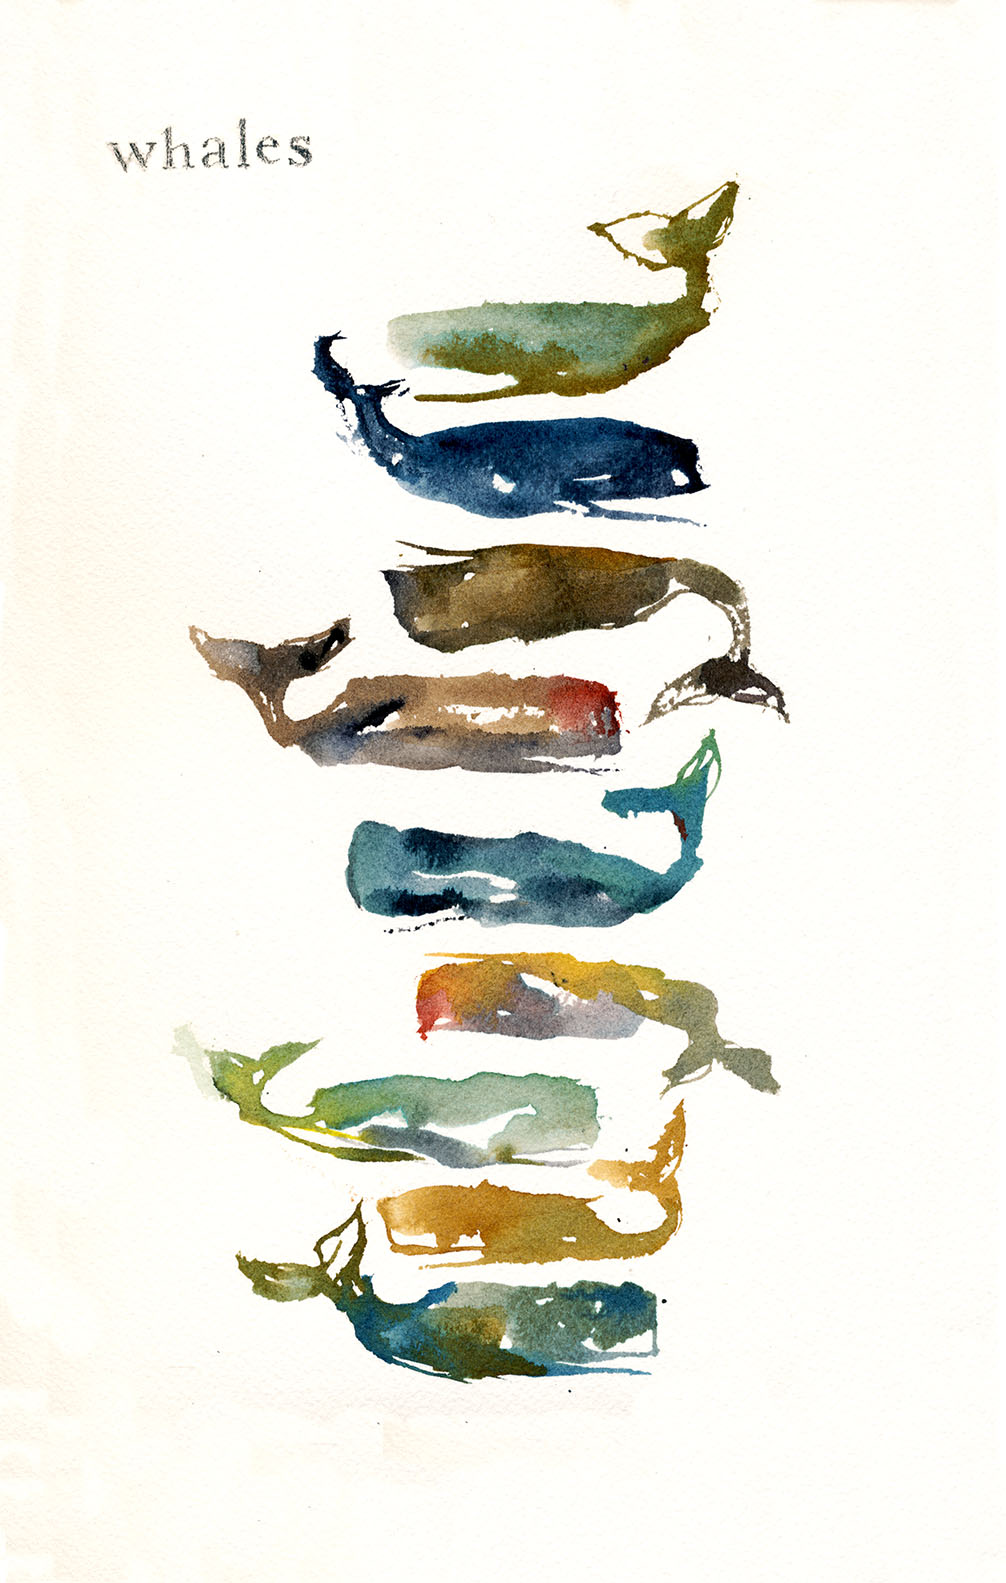 Whales, 2016